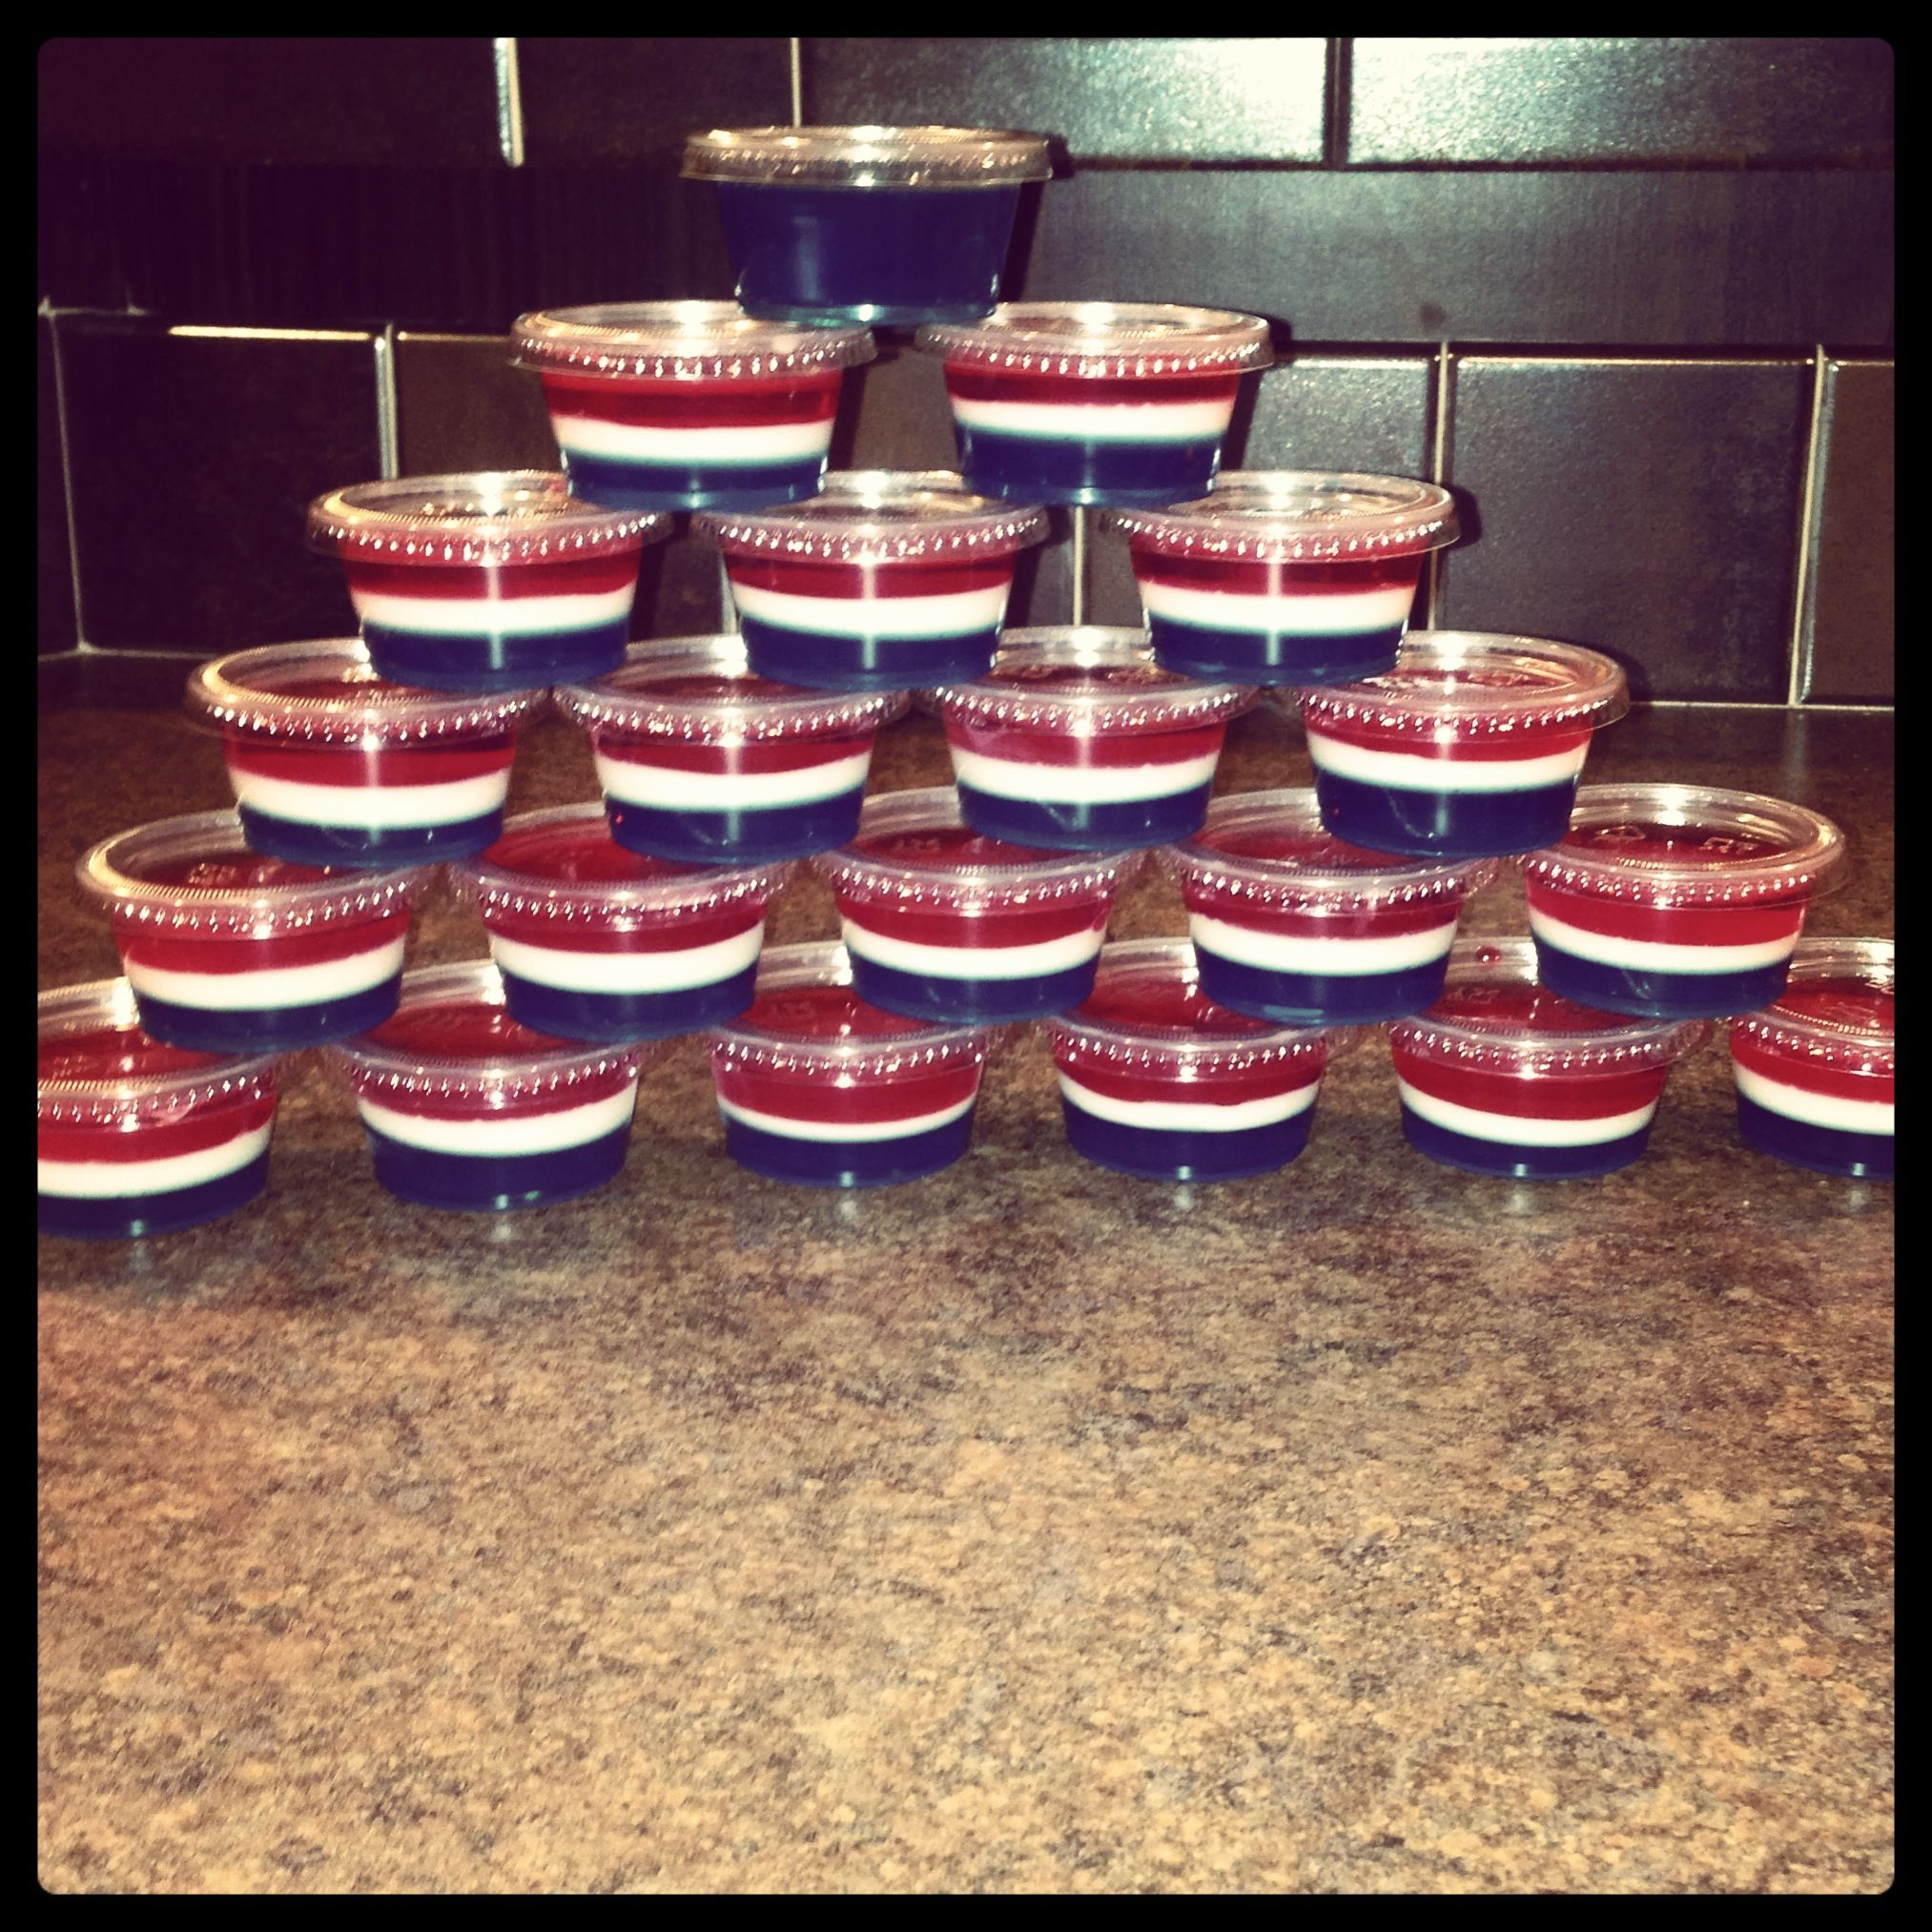 4th of july shots